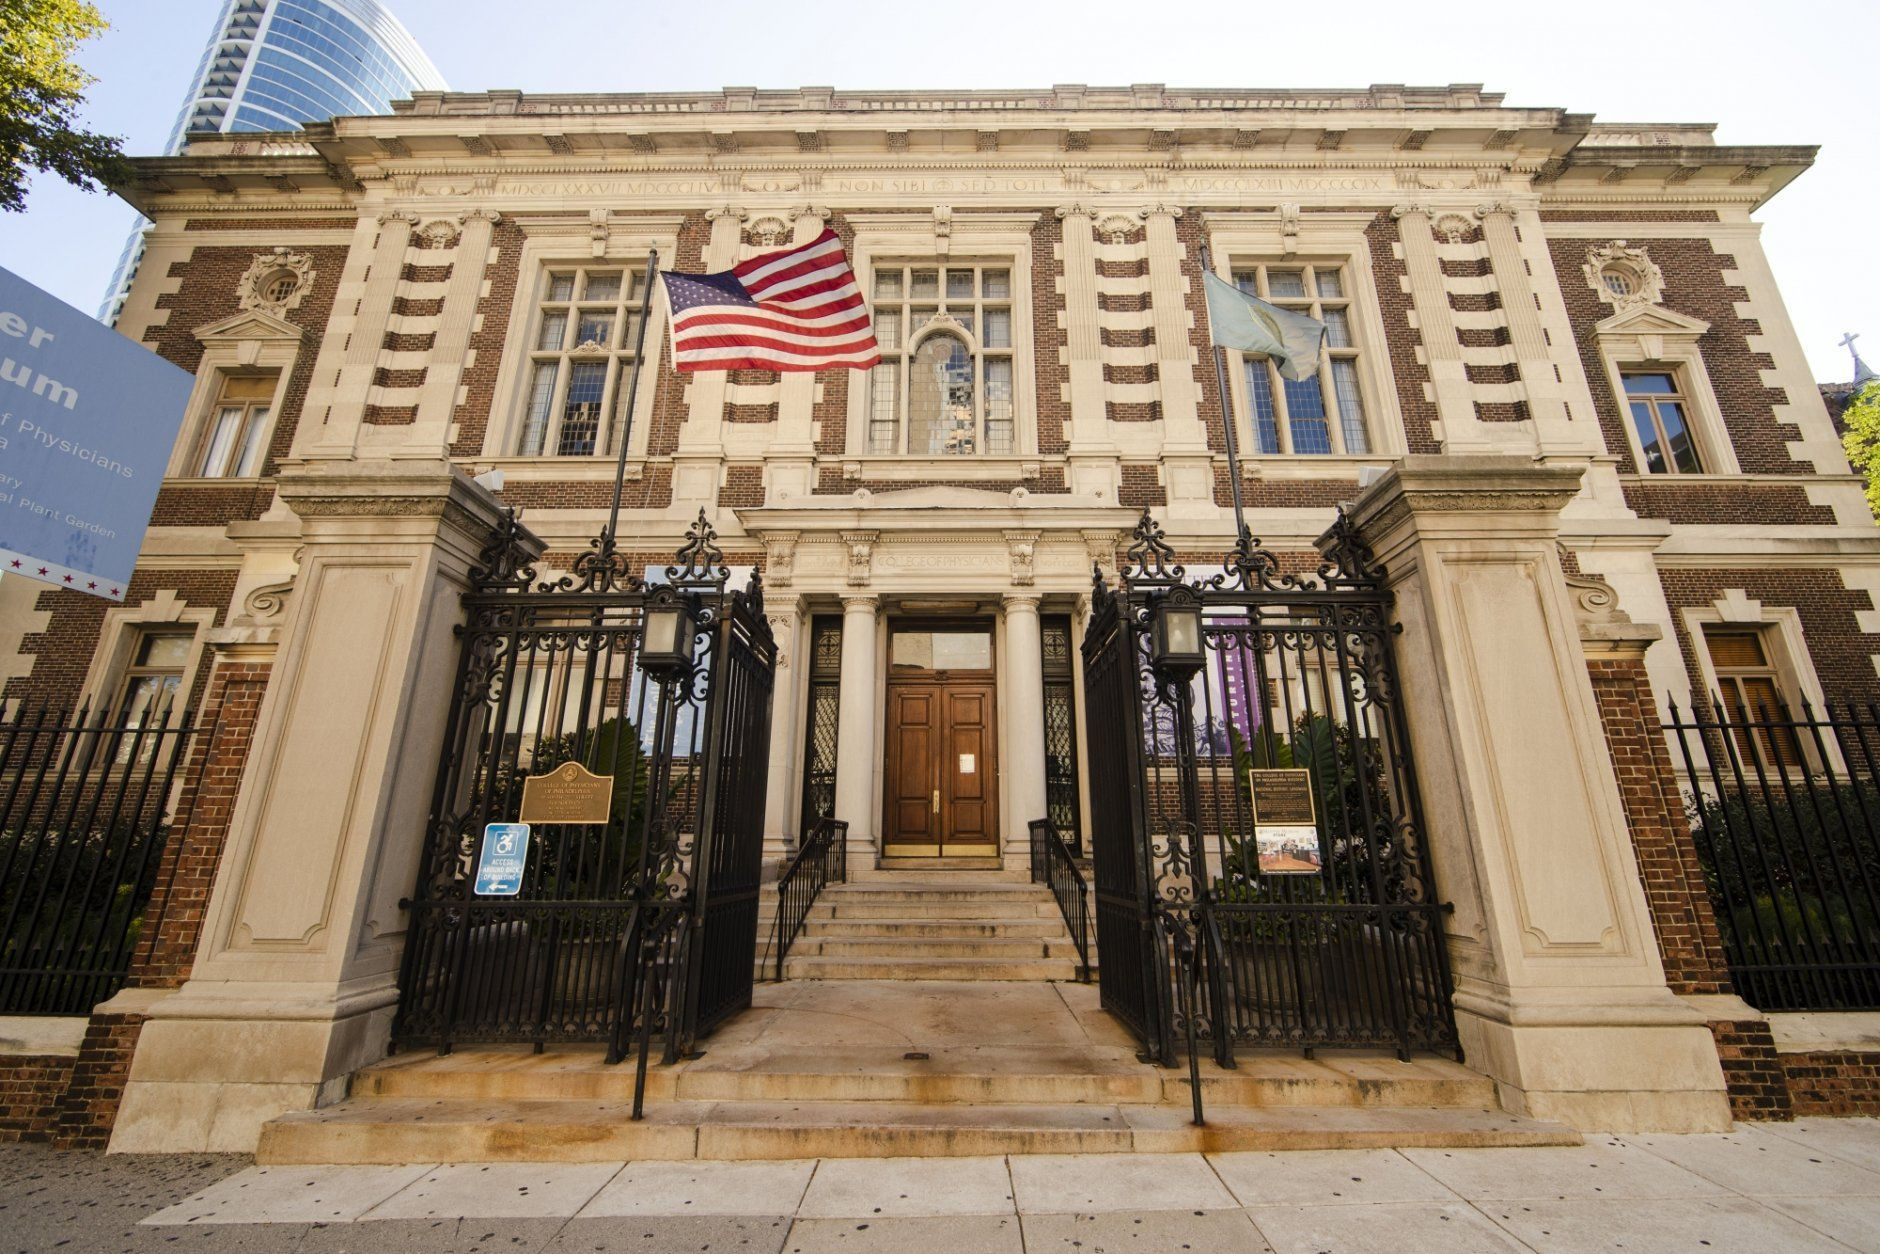 In this Sept. 17, 2019 photo shown is the Mutter Museum in Philadelphia. The museum nown for its collection of organs preserved in jars, deformed skeletons and wax casts of medical maladies, will have a new permanent exhibit on the 1918-1919 influenza pandemic in Philadelphia. (AP Photo/Matt Rourke)